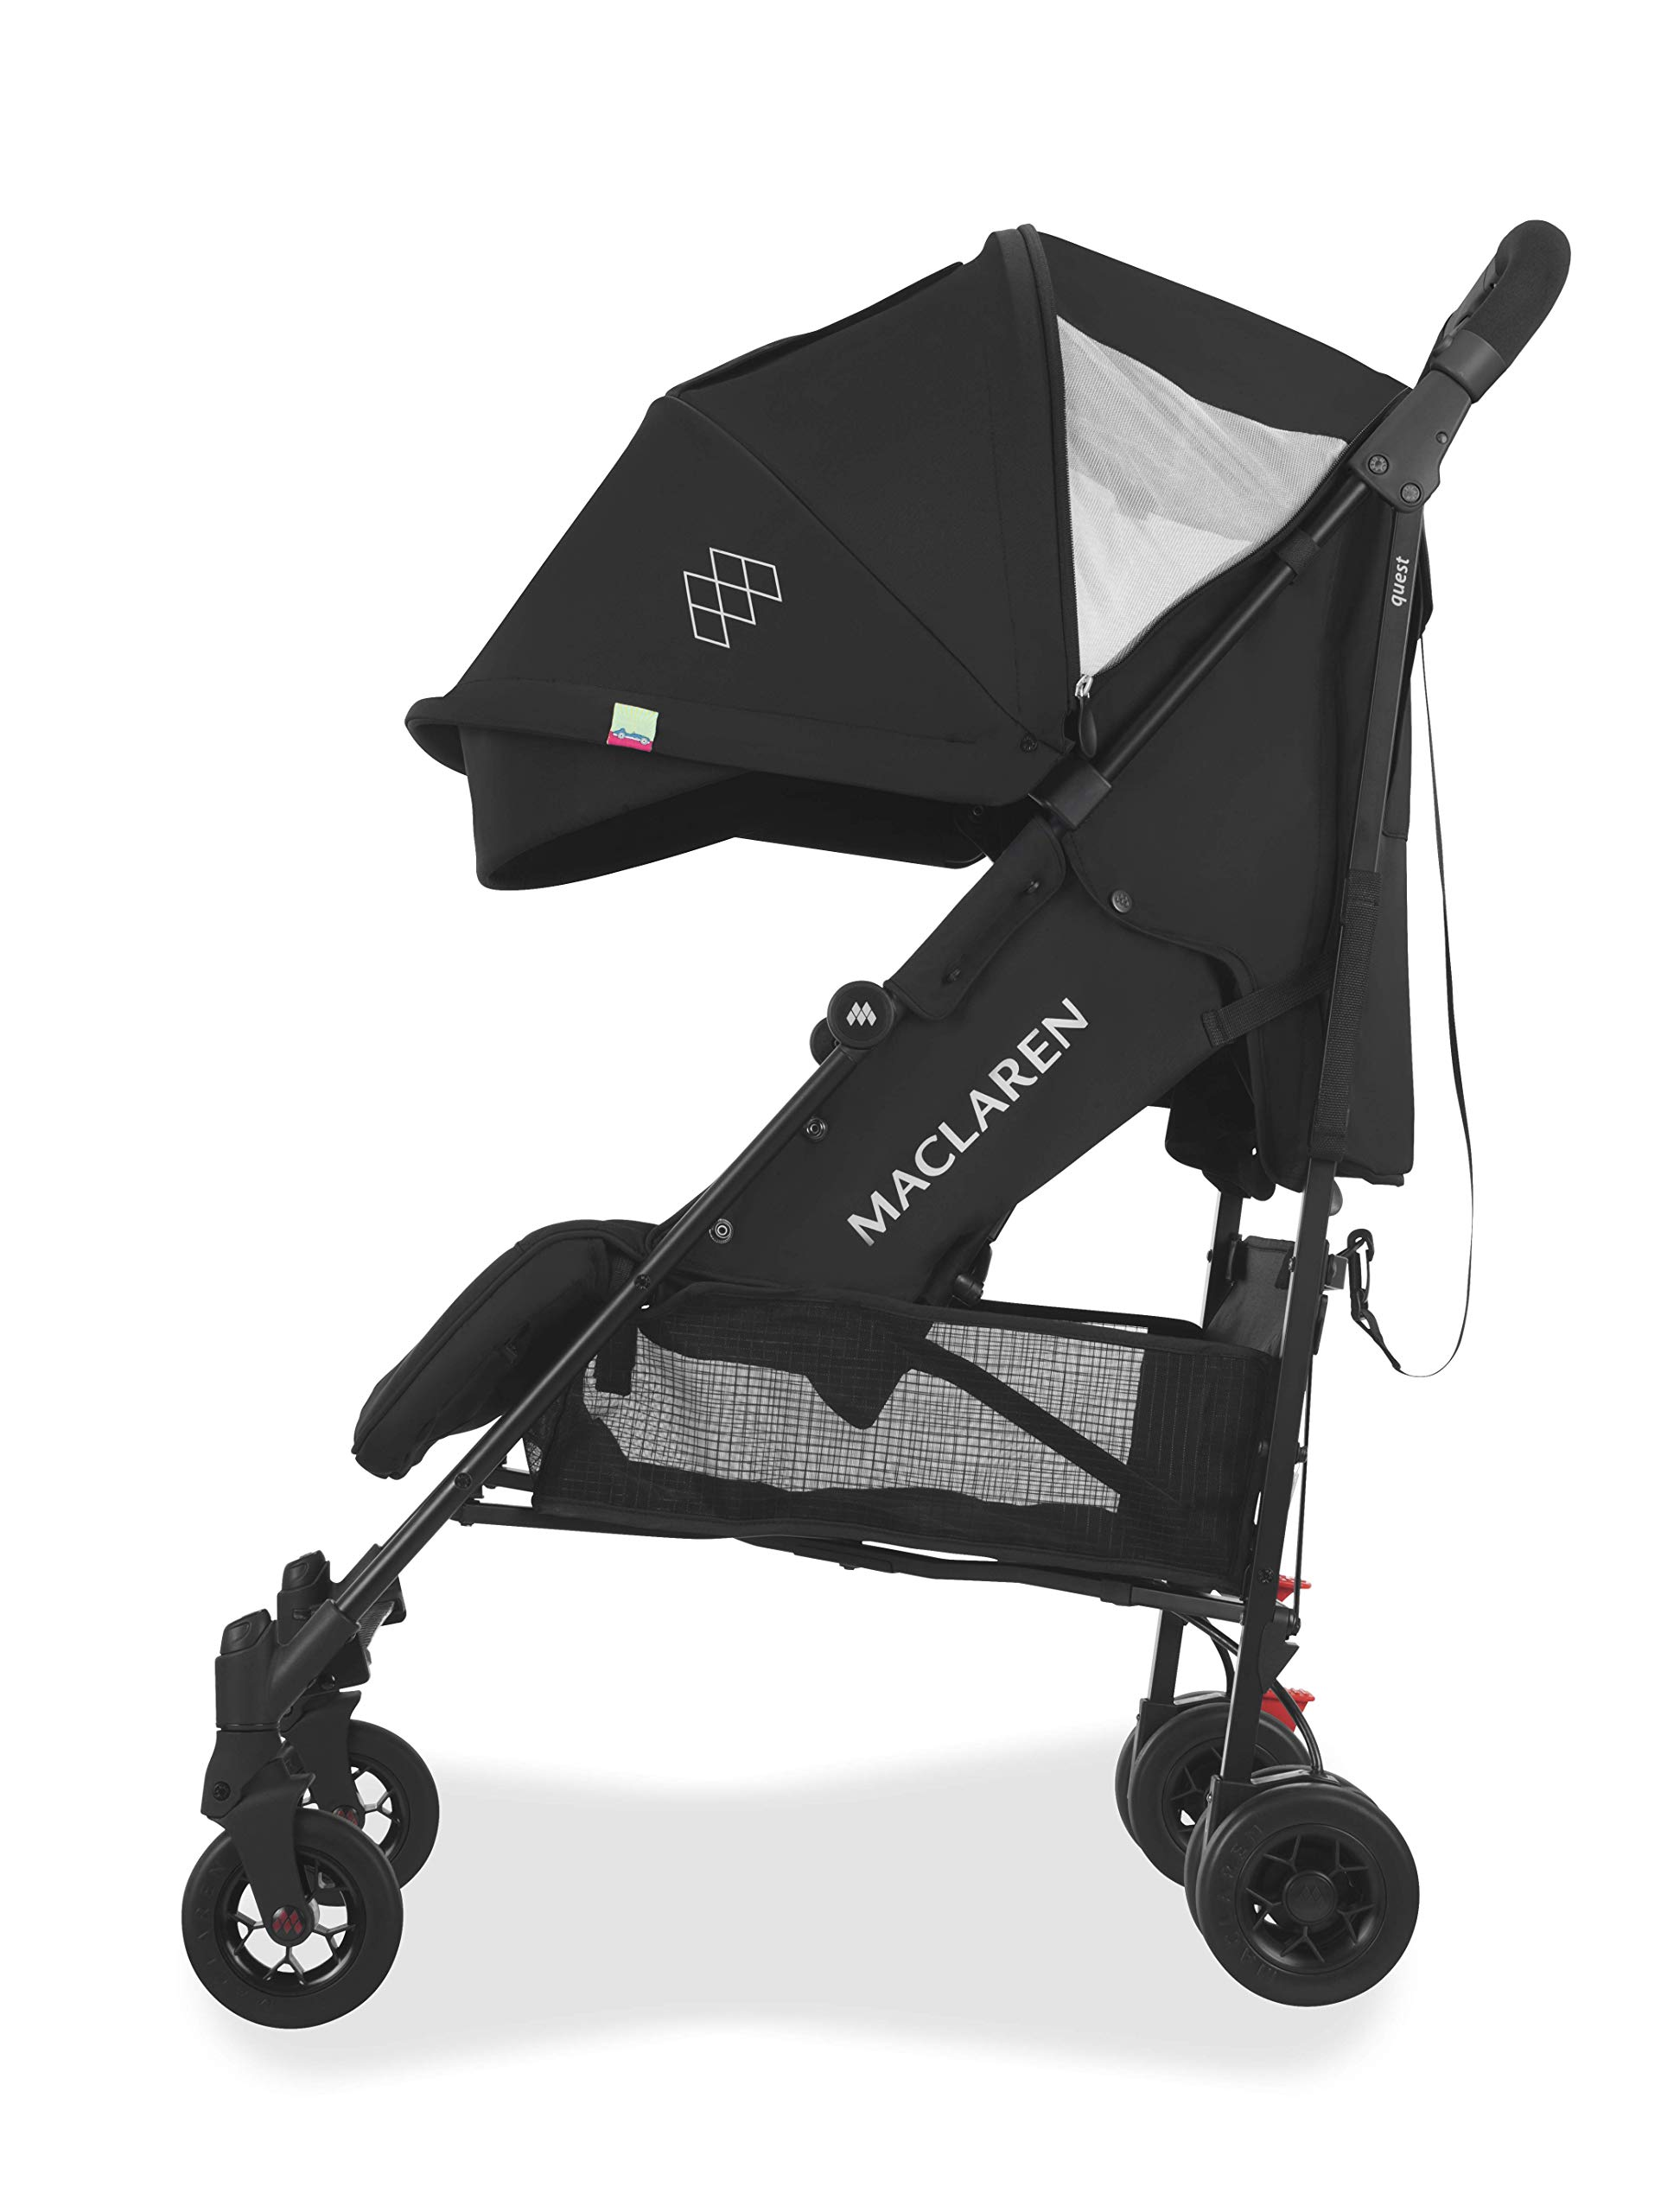 Maclaren Quest Arc Stroller- Ideal for Newborns up to 25kg with extendable UPF 50+/Waterproof Hood, Multi-Position seat and 4-Wheel Suspension. Maclaren Carrycot Compatible. Accessories in The Box Maclaren Lightweight and compact. ideal for newborns and children up to 25kg. you can do it all with one-hand- open, close, push and adjust the seat, footrest and front safety lock Comfy and perfect for travel. the quest arc's padded seat reclines into 4 positions and converts into a new-born safety system. coupled with ultra light flat-free eva tires and all wheel suspension Smart product for active parents. compatible with the maclaren carrycot. all maclaren strollers have waterproof/ upf 50+ hoods to protect from the elements and machine washable seats to keep tidy 3